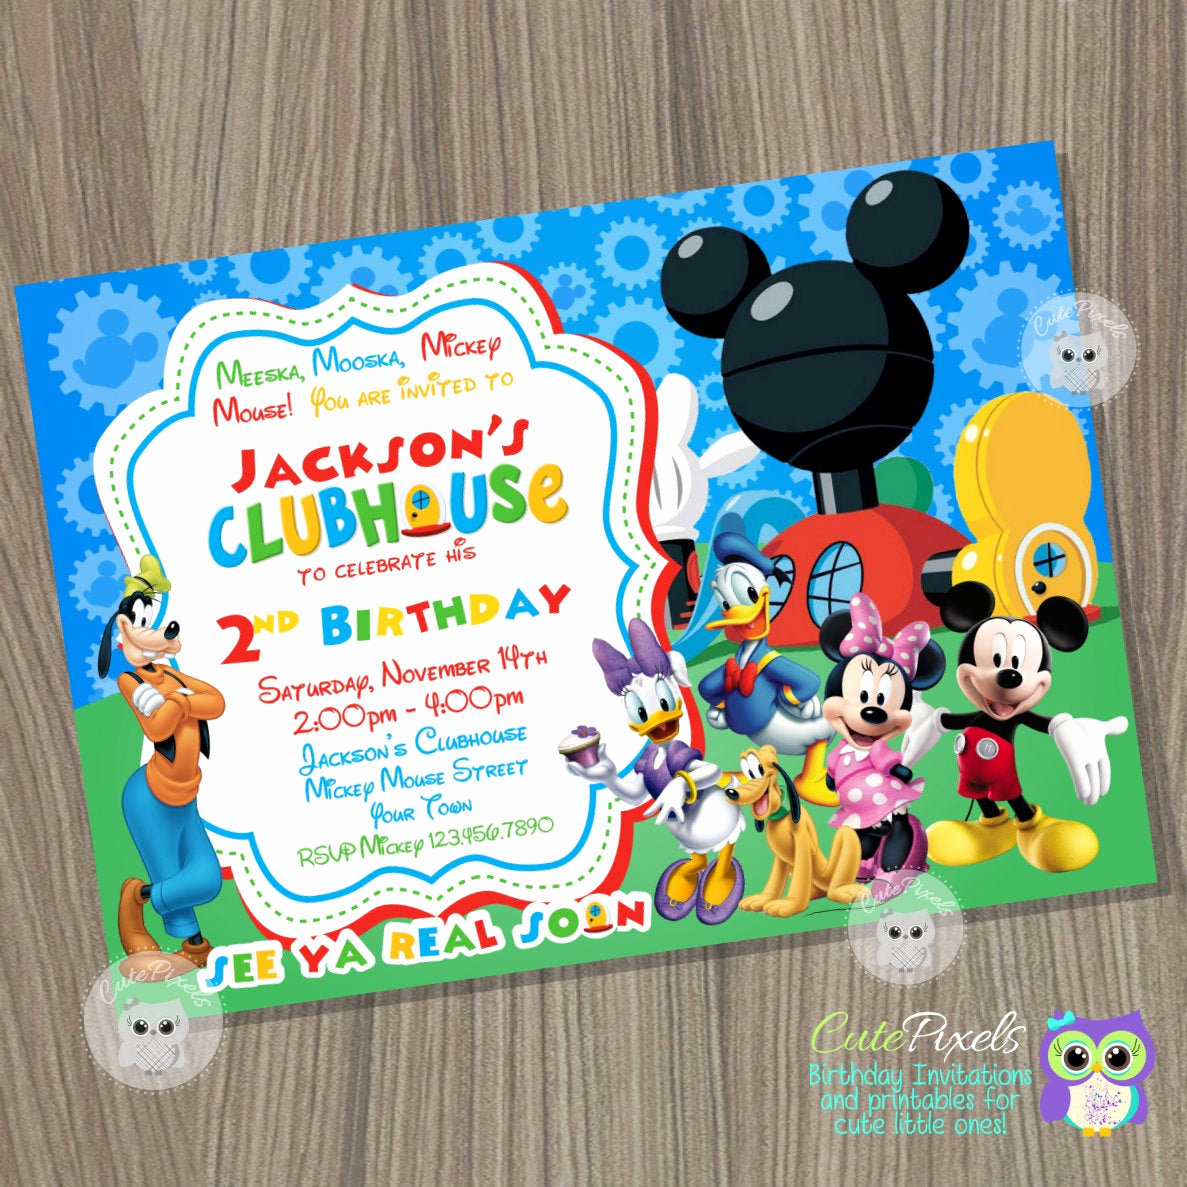 Mickey Mouse Club House Invitation Beautiful Mickey Mouse Clubhouse Invitation Mickey Mouse Birthday